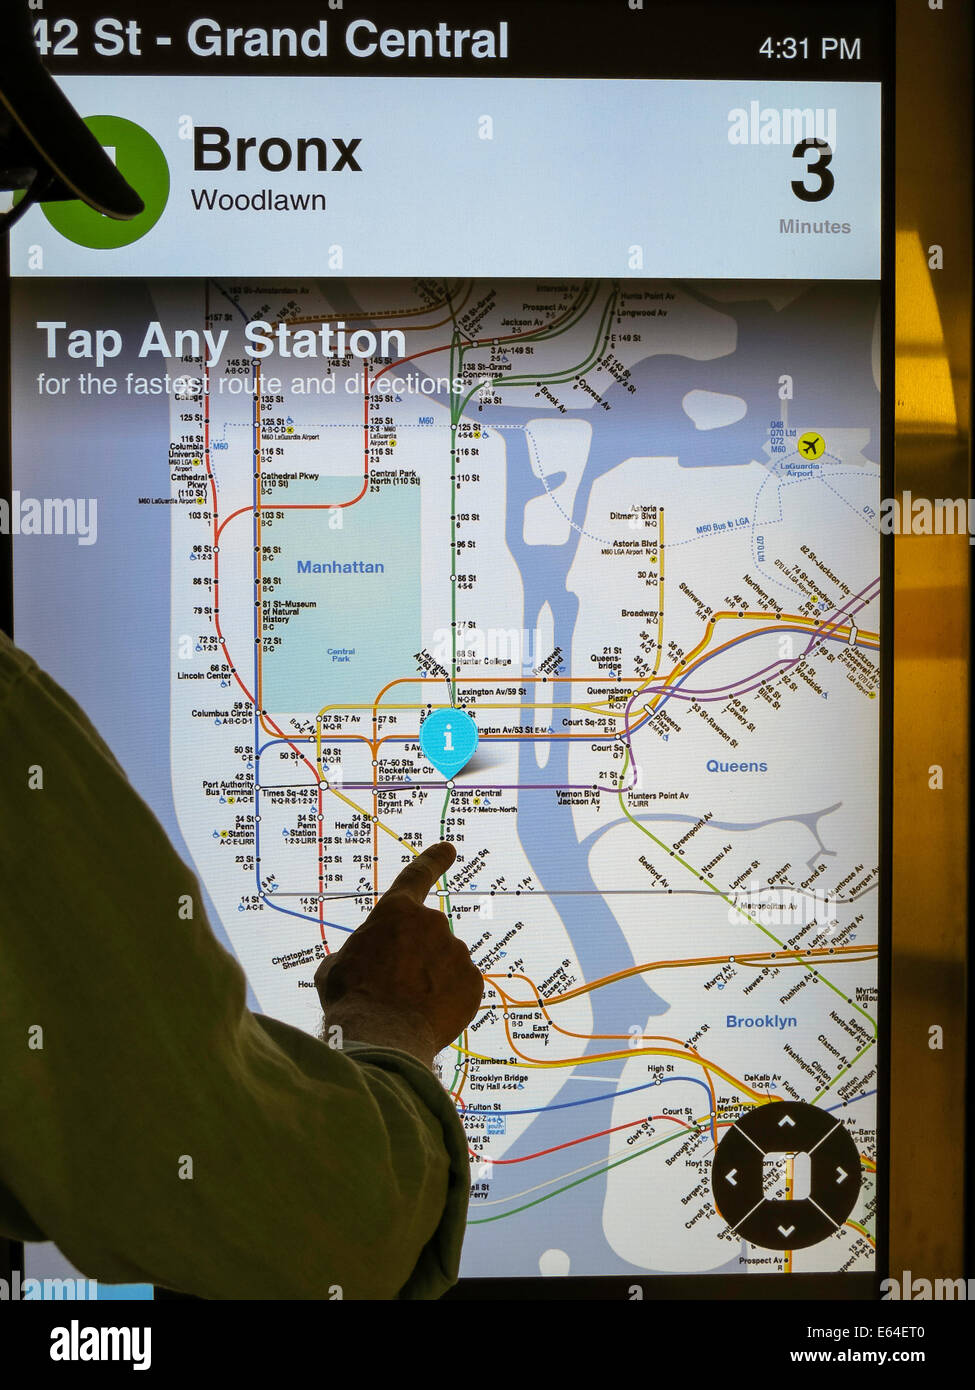 Mobile Nyc Subway Map.Silhouette Of Rider In Front Of Illuminated Mta Subway Map Nyc